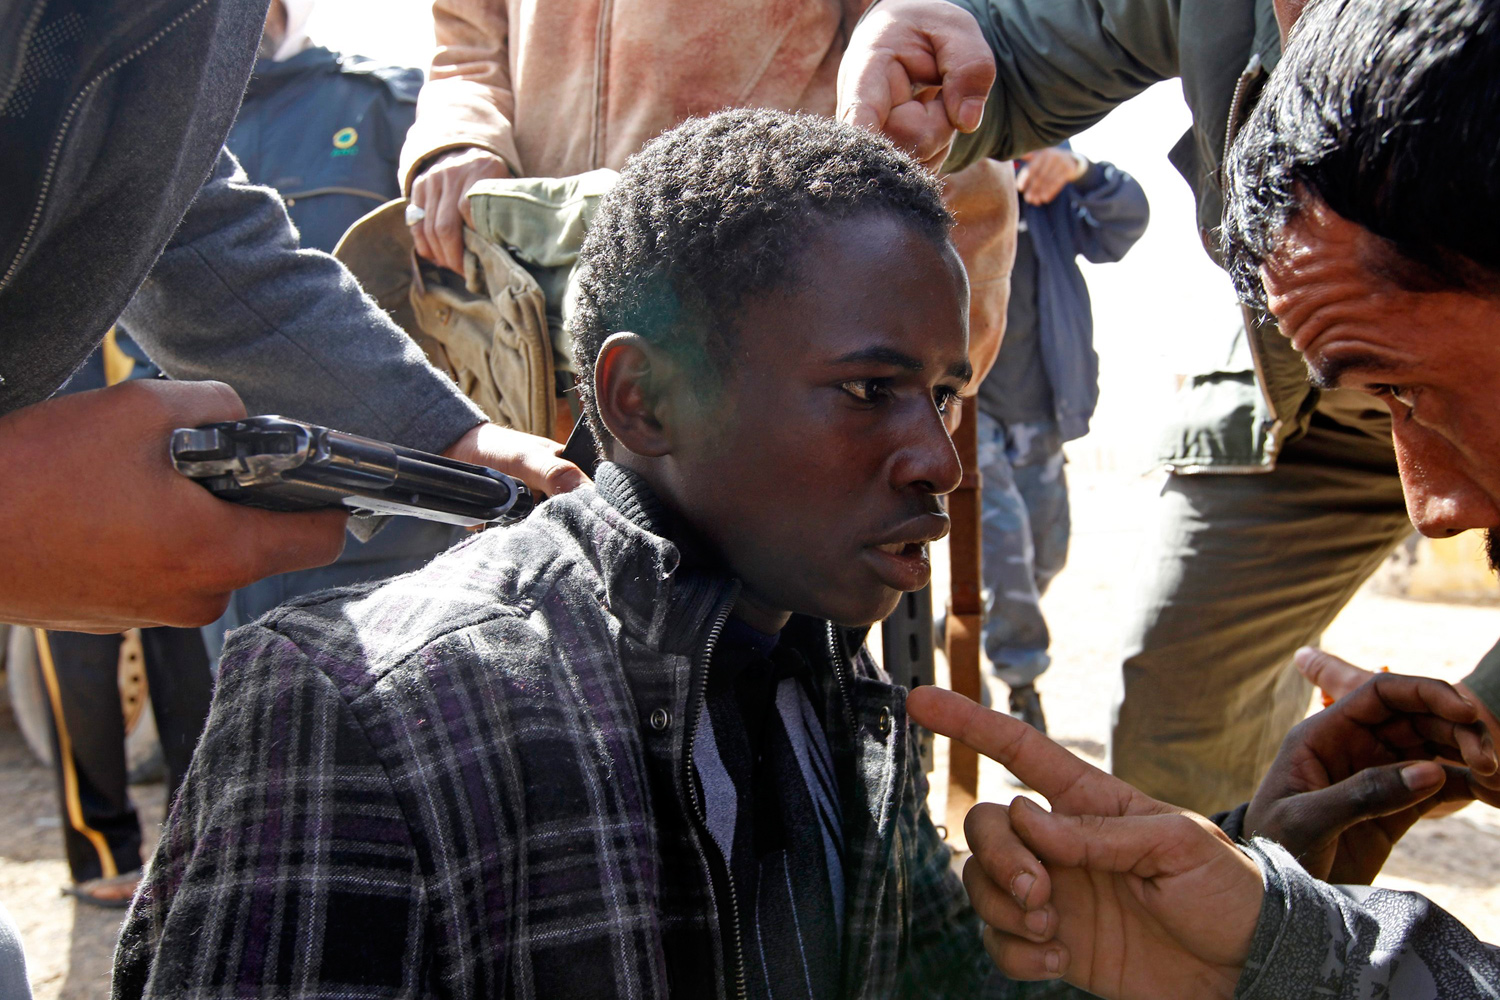 March 3, 2011. Rebels hold a young man, whom they accused of being a Gaddafi loyalist, at gunpoint between the towns of Brega and Ras Lanuf.